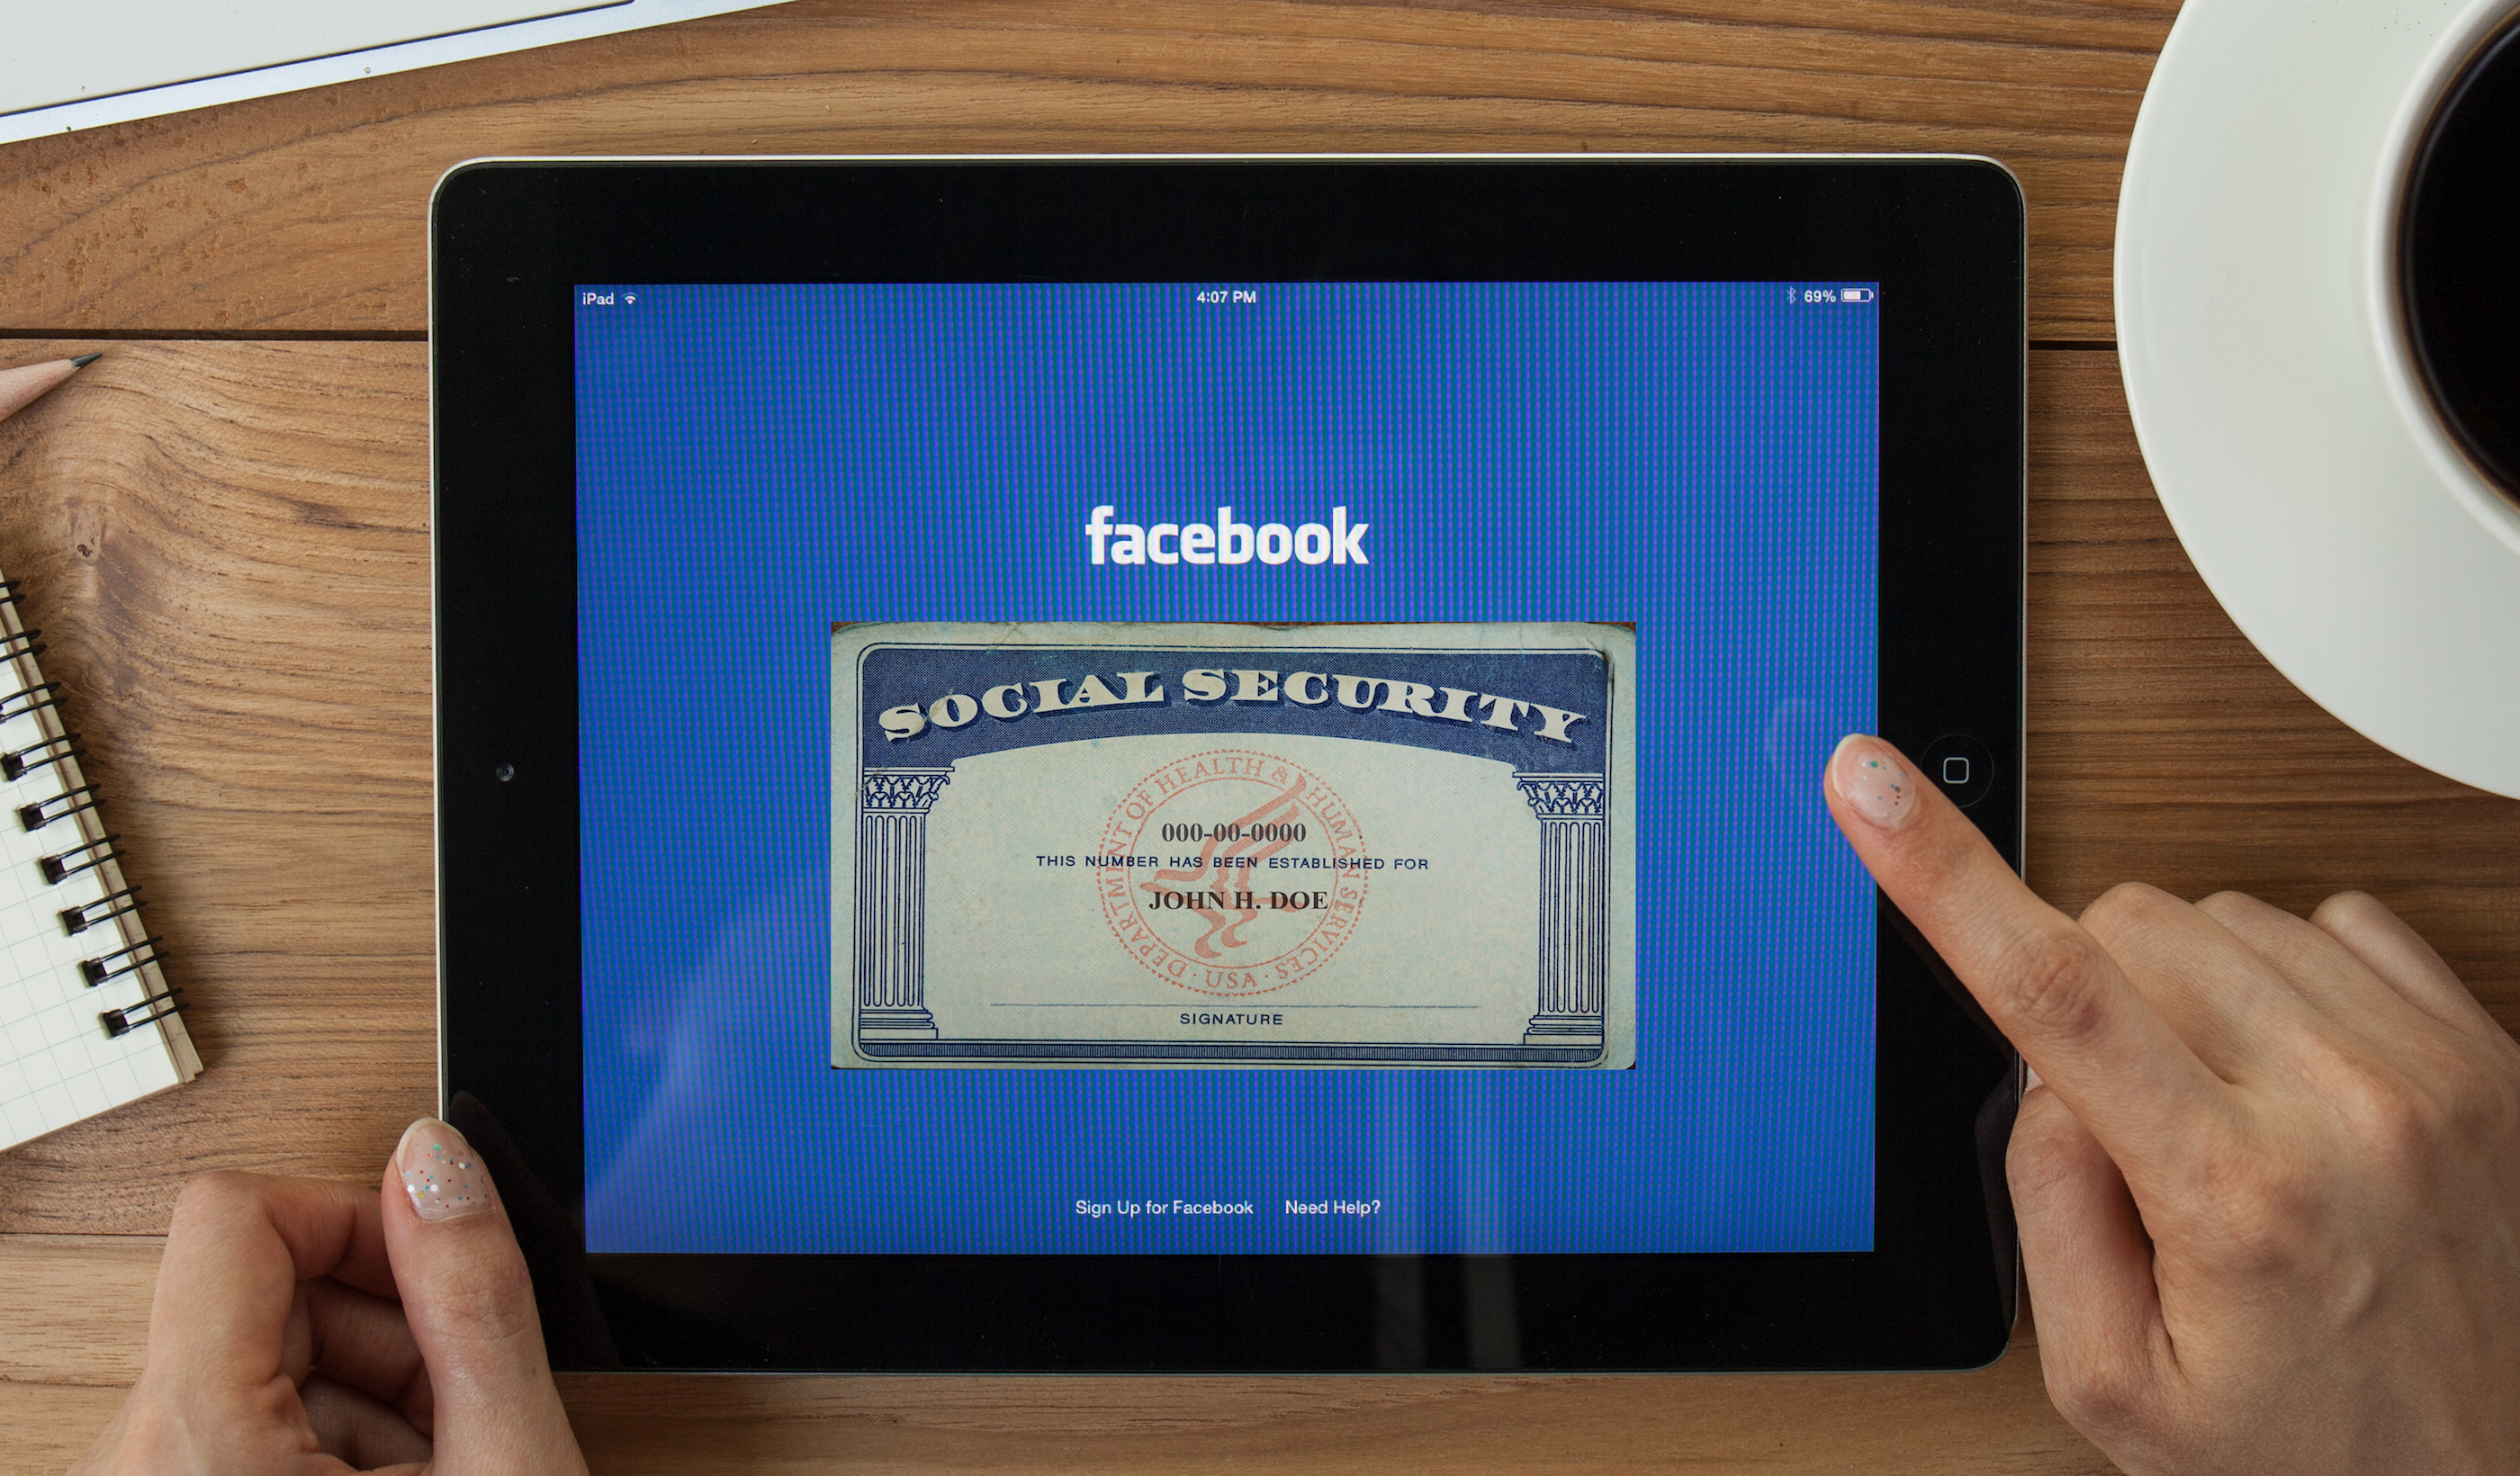 Vice Security - Hosted For Years Social Has Stolen And Numbers Facebook Identities